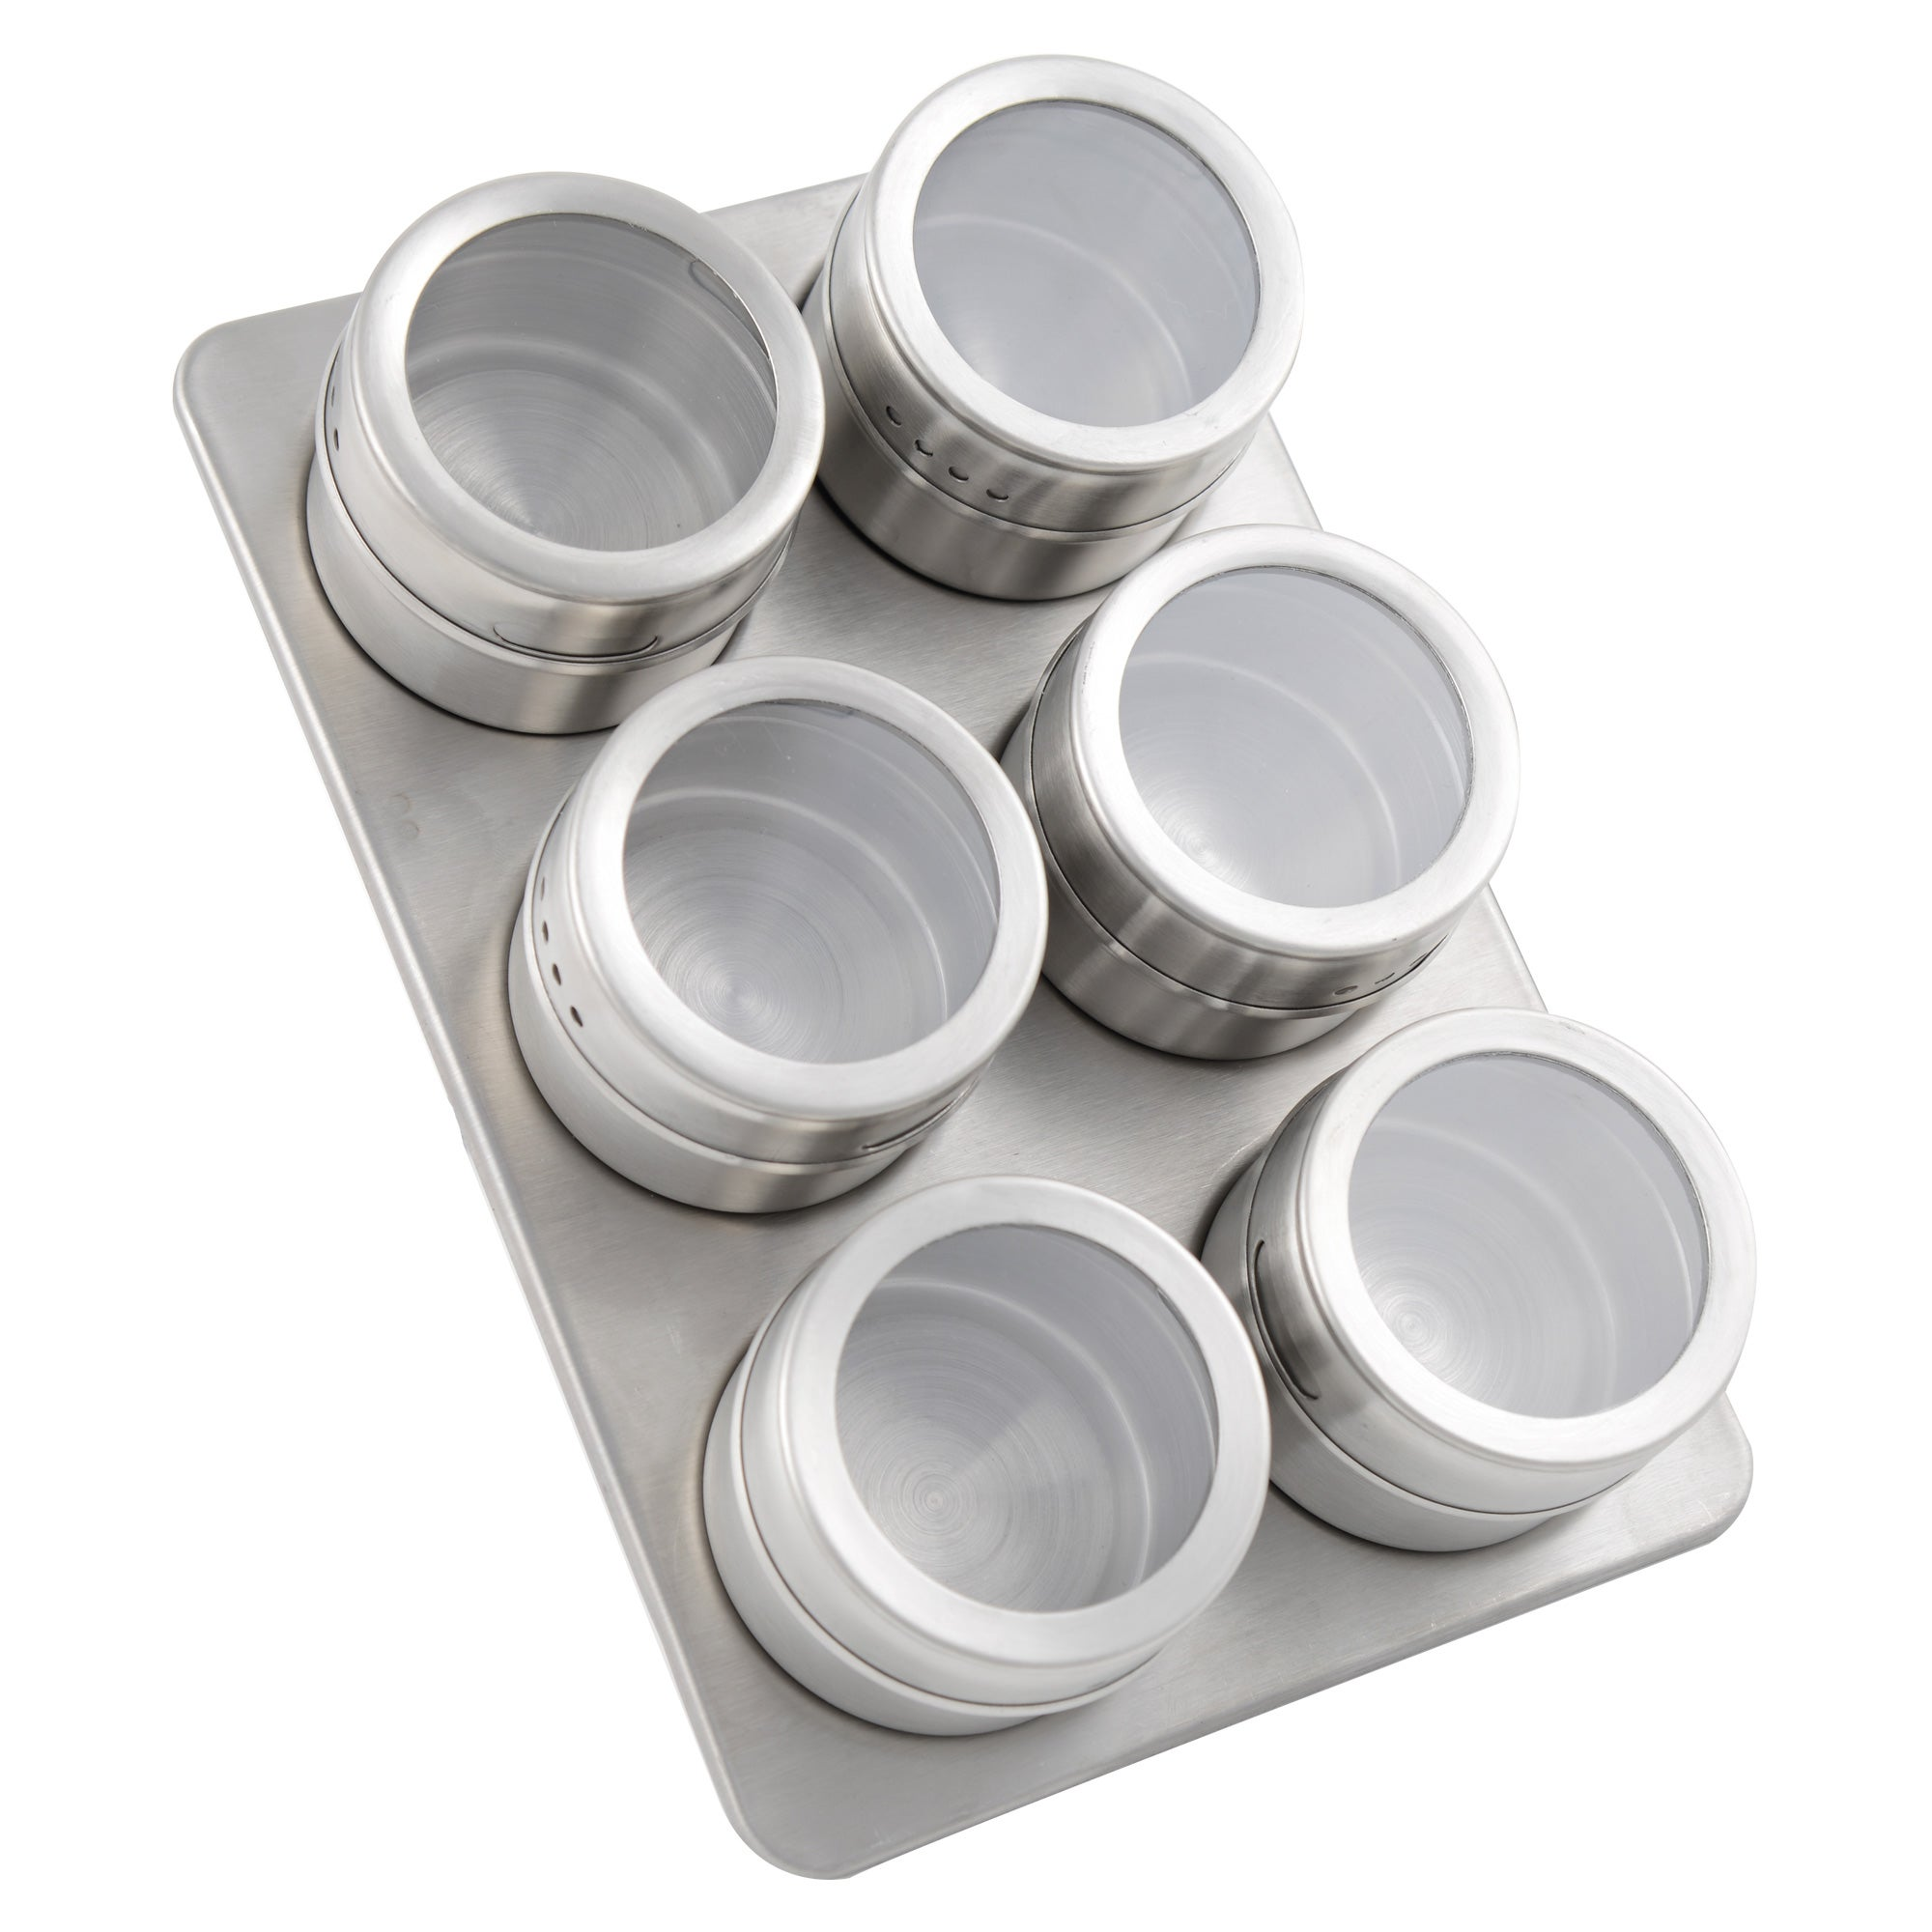 Set of 6 Spice Jars and Magnetic Rack